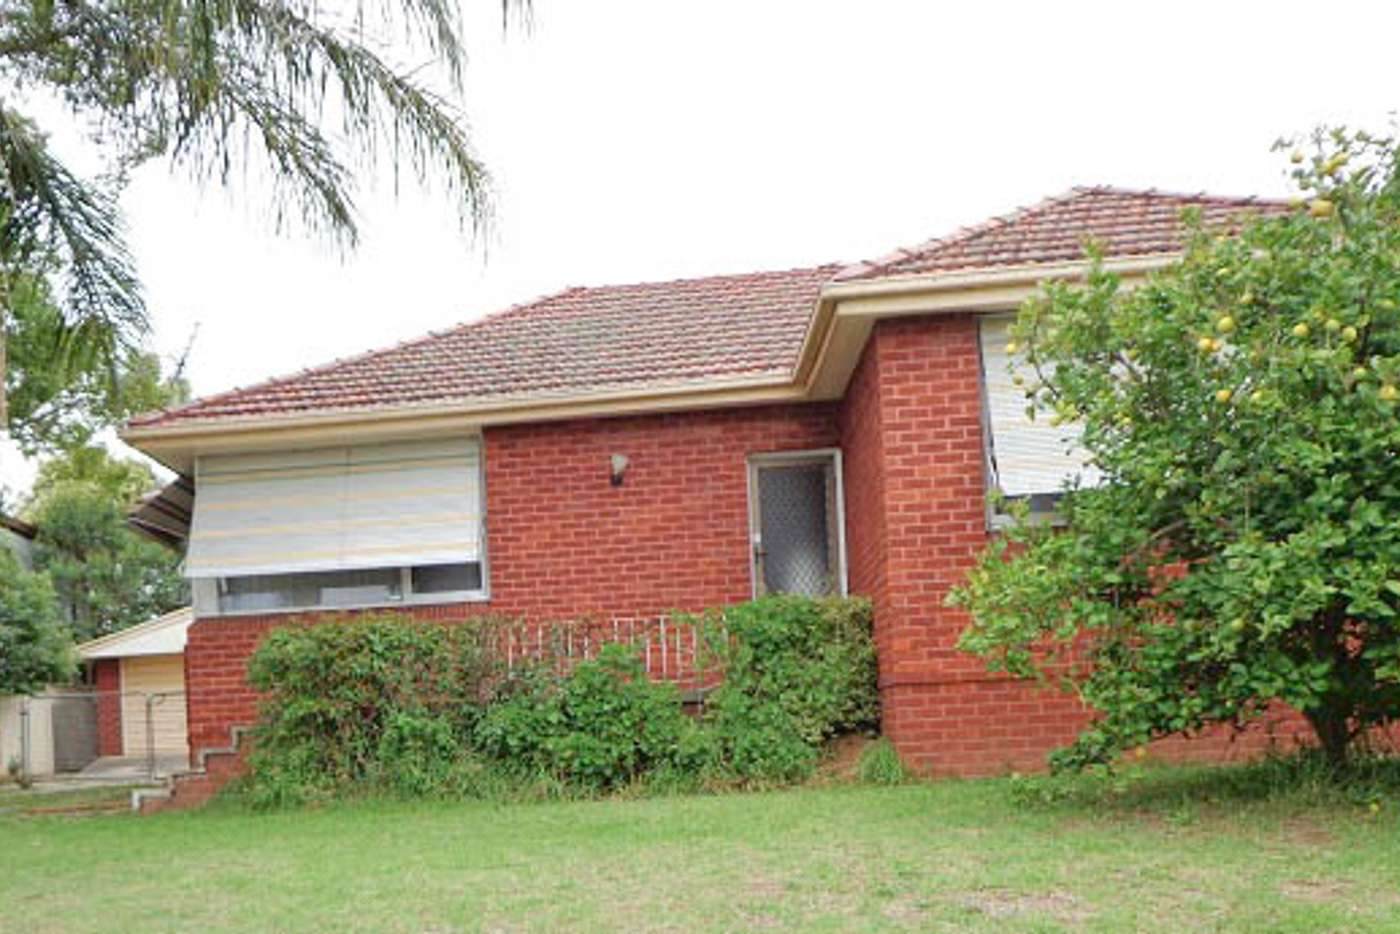 Main view of Homely house listing, 30 Sutherland Street, Canley Heights NSW 2166